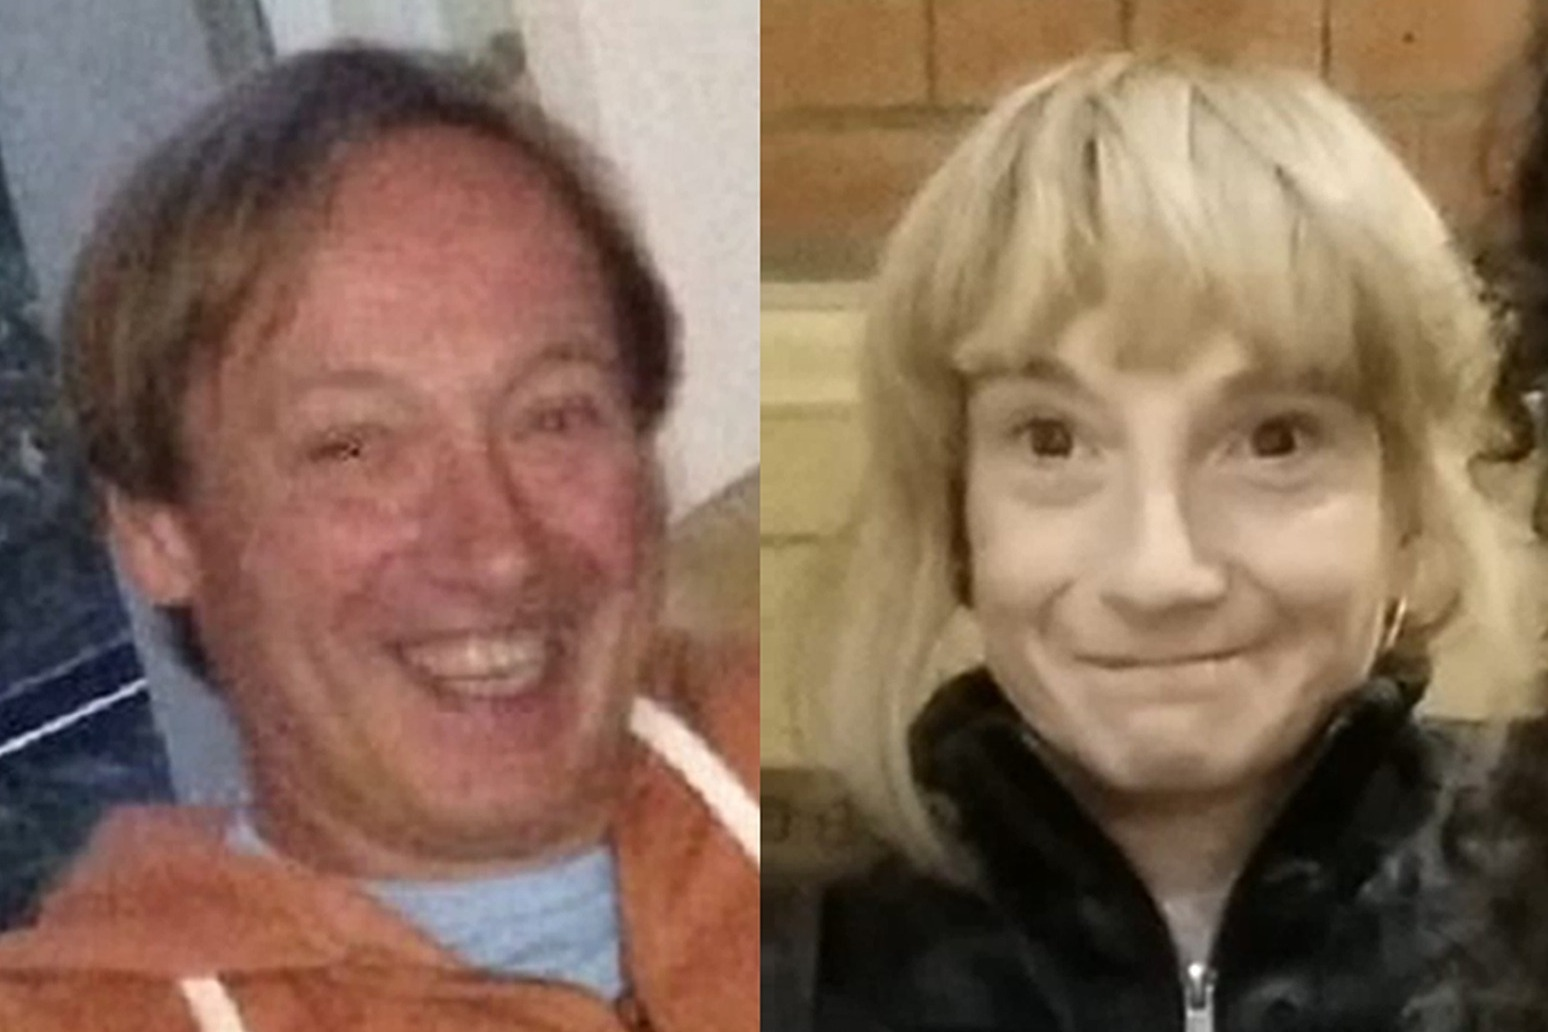 Police name victims in Westminster double murder investigation